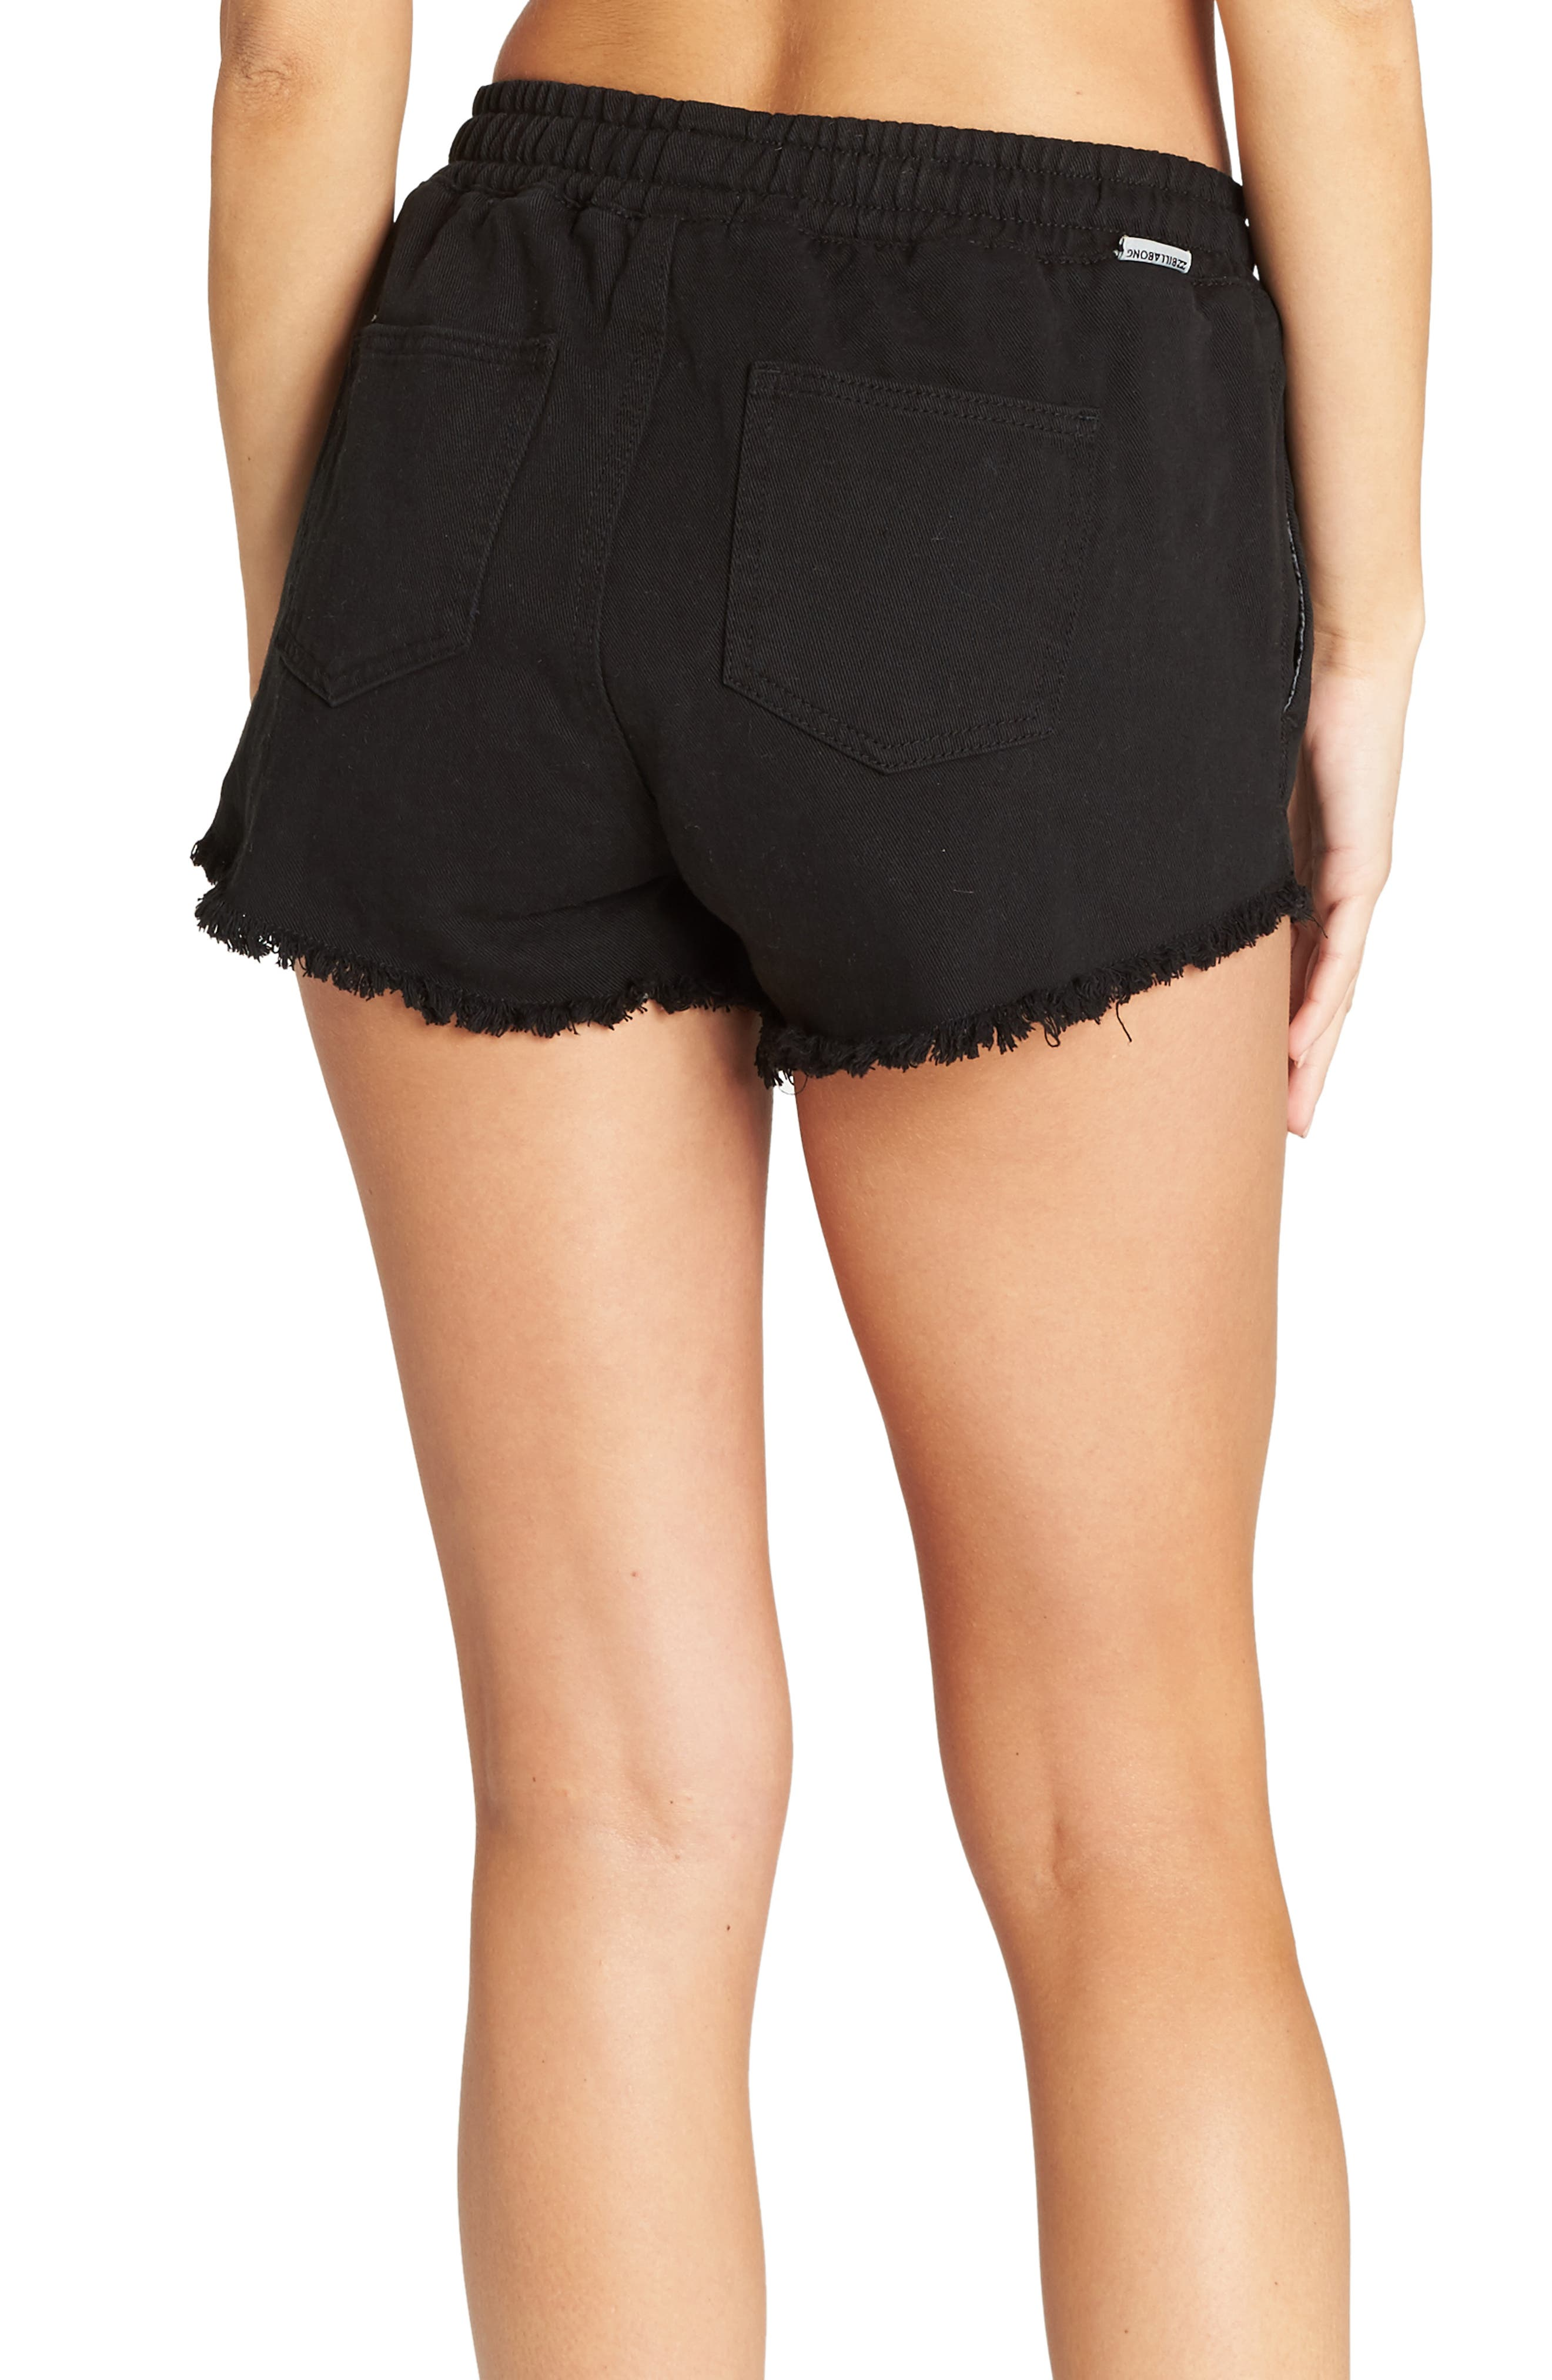 BILLABONG, Coast Line Twill Shorts, Main thumbnail 1, color, TRUE BLACK